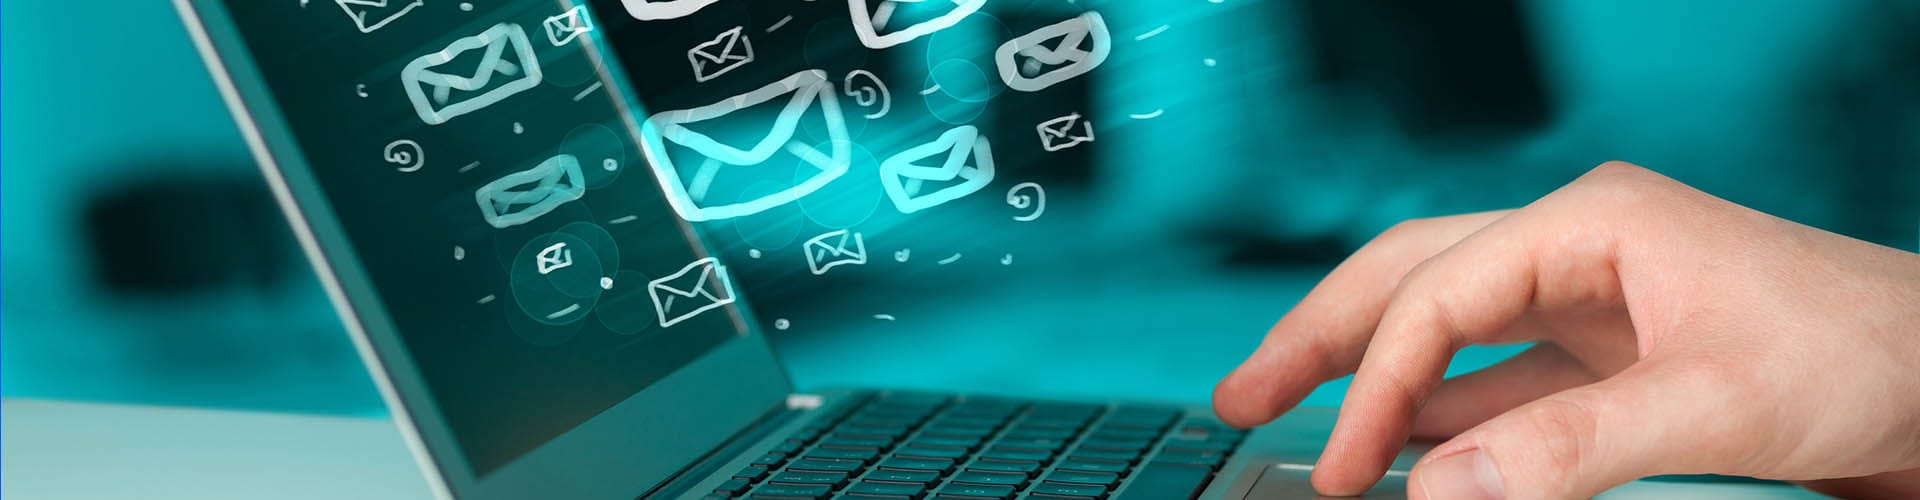 email marketing with ncr counterpoint pos